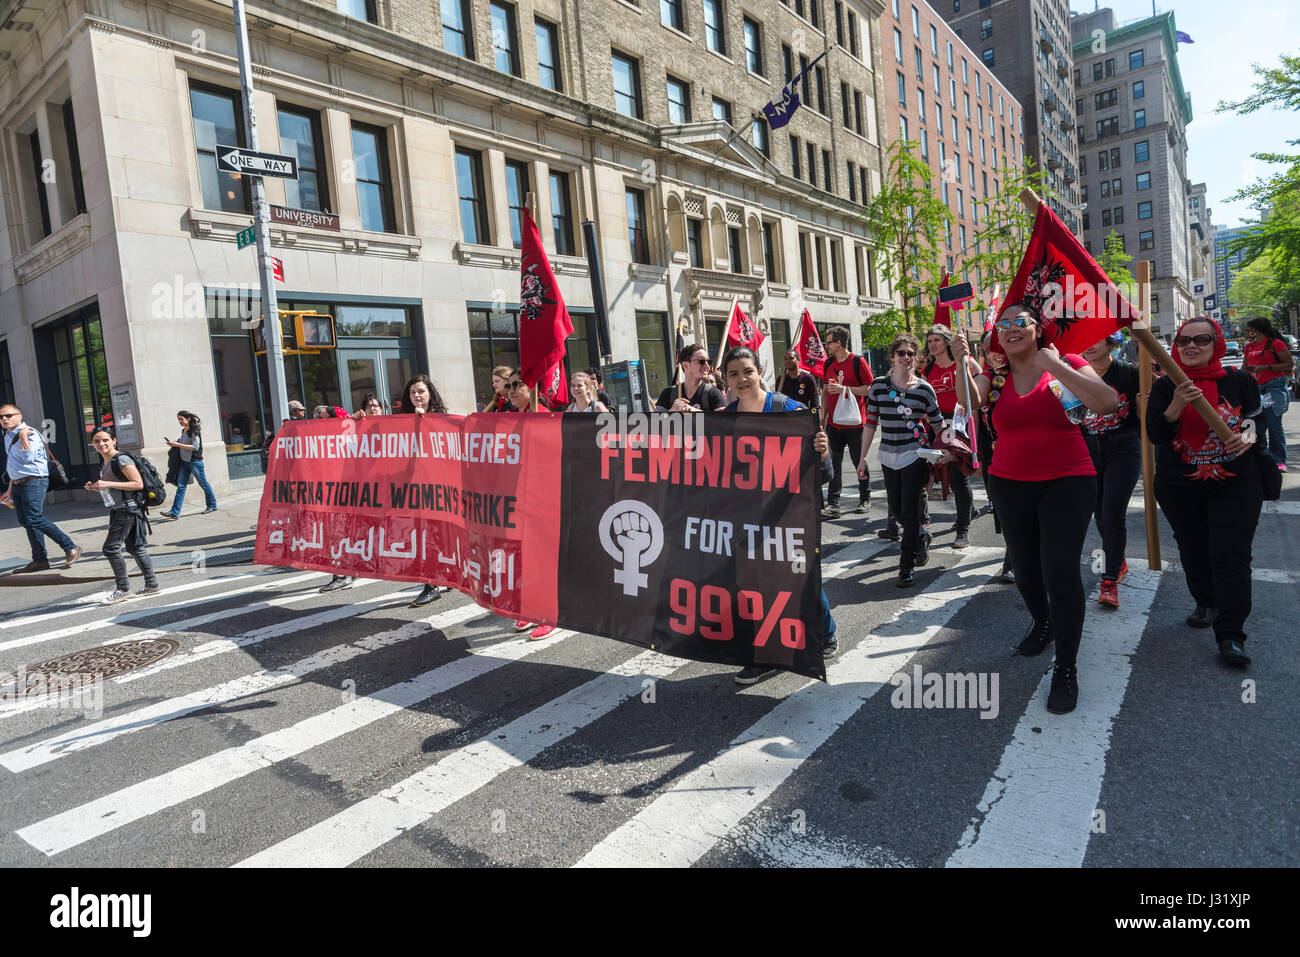 New York, USA. 01st May, 2017. New York, NY 1 May 2017 - Socialists, dressed in red, march up University Place, - Stock Image